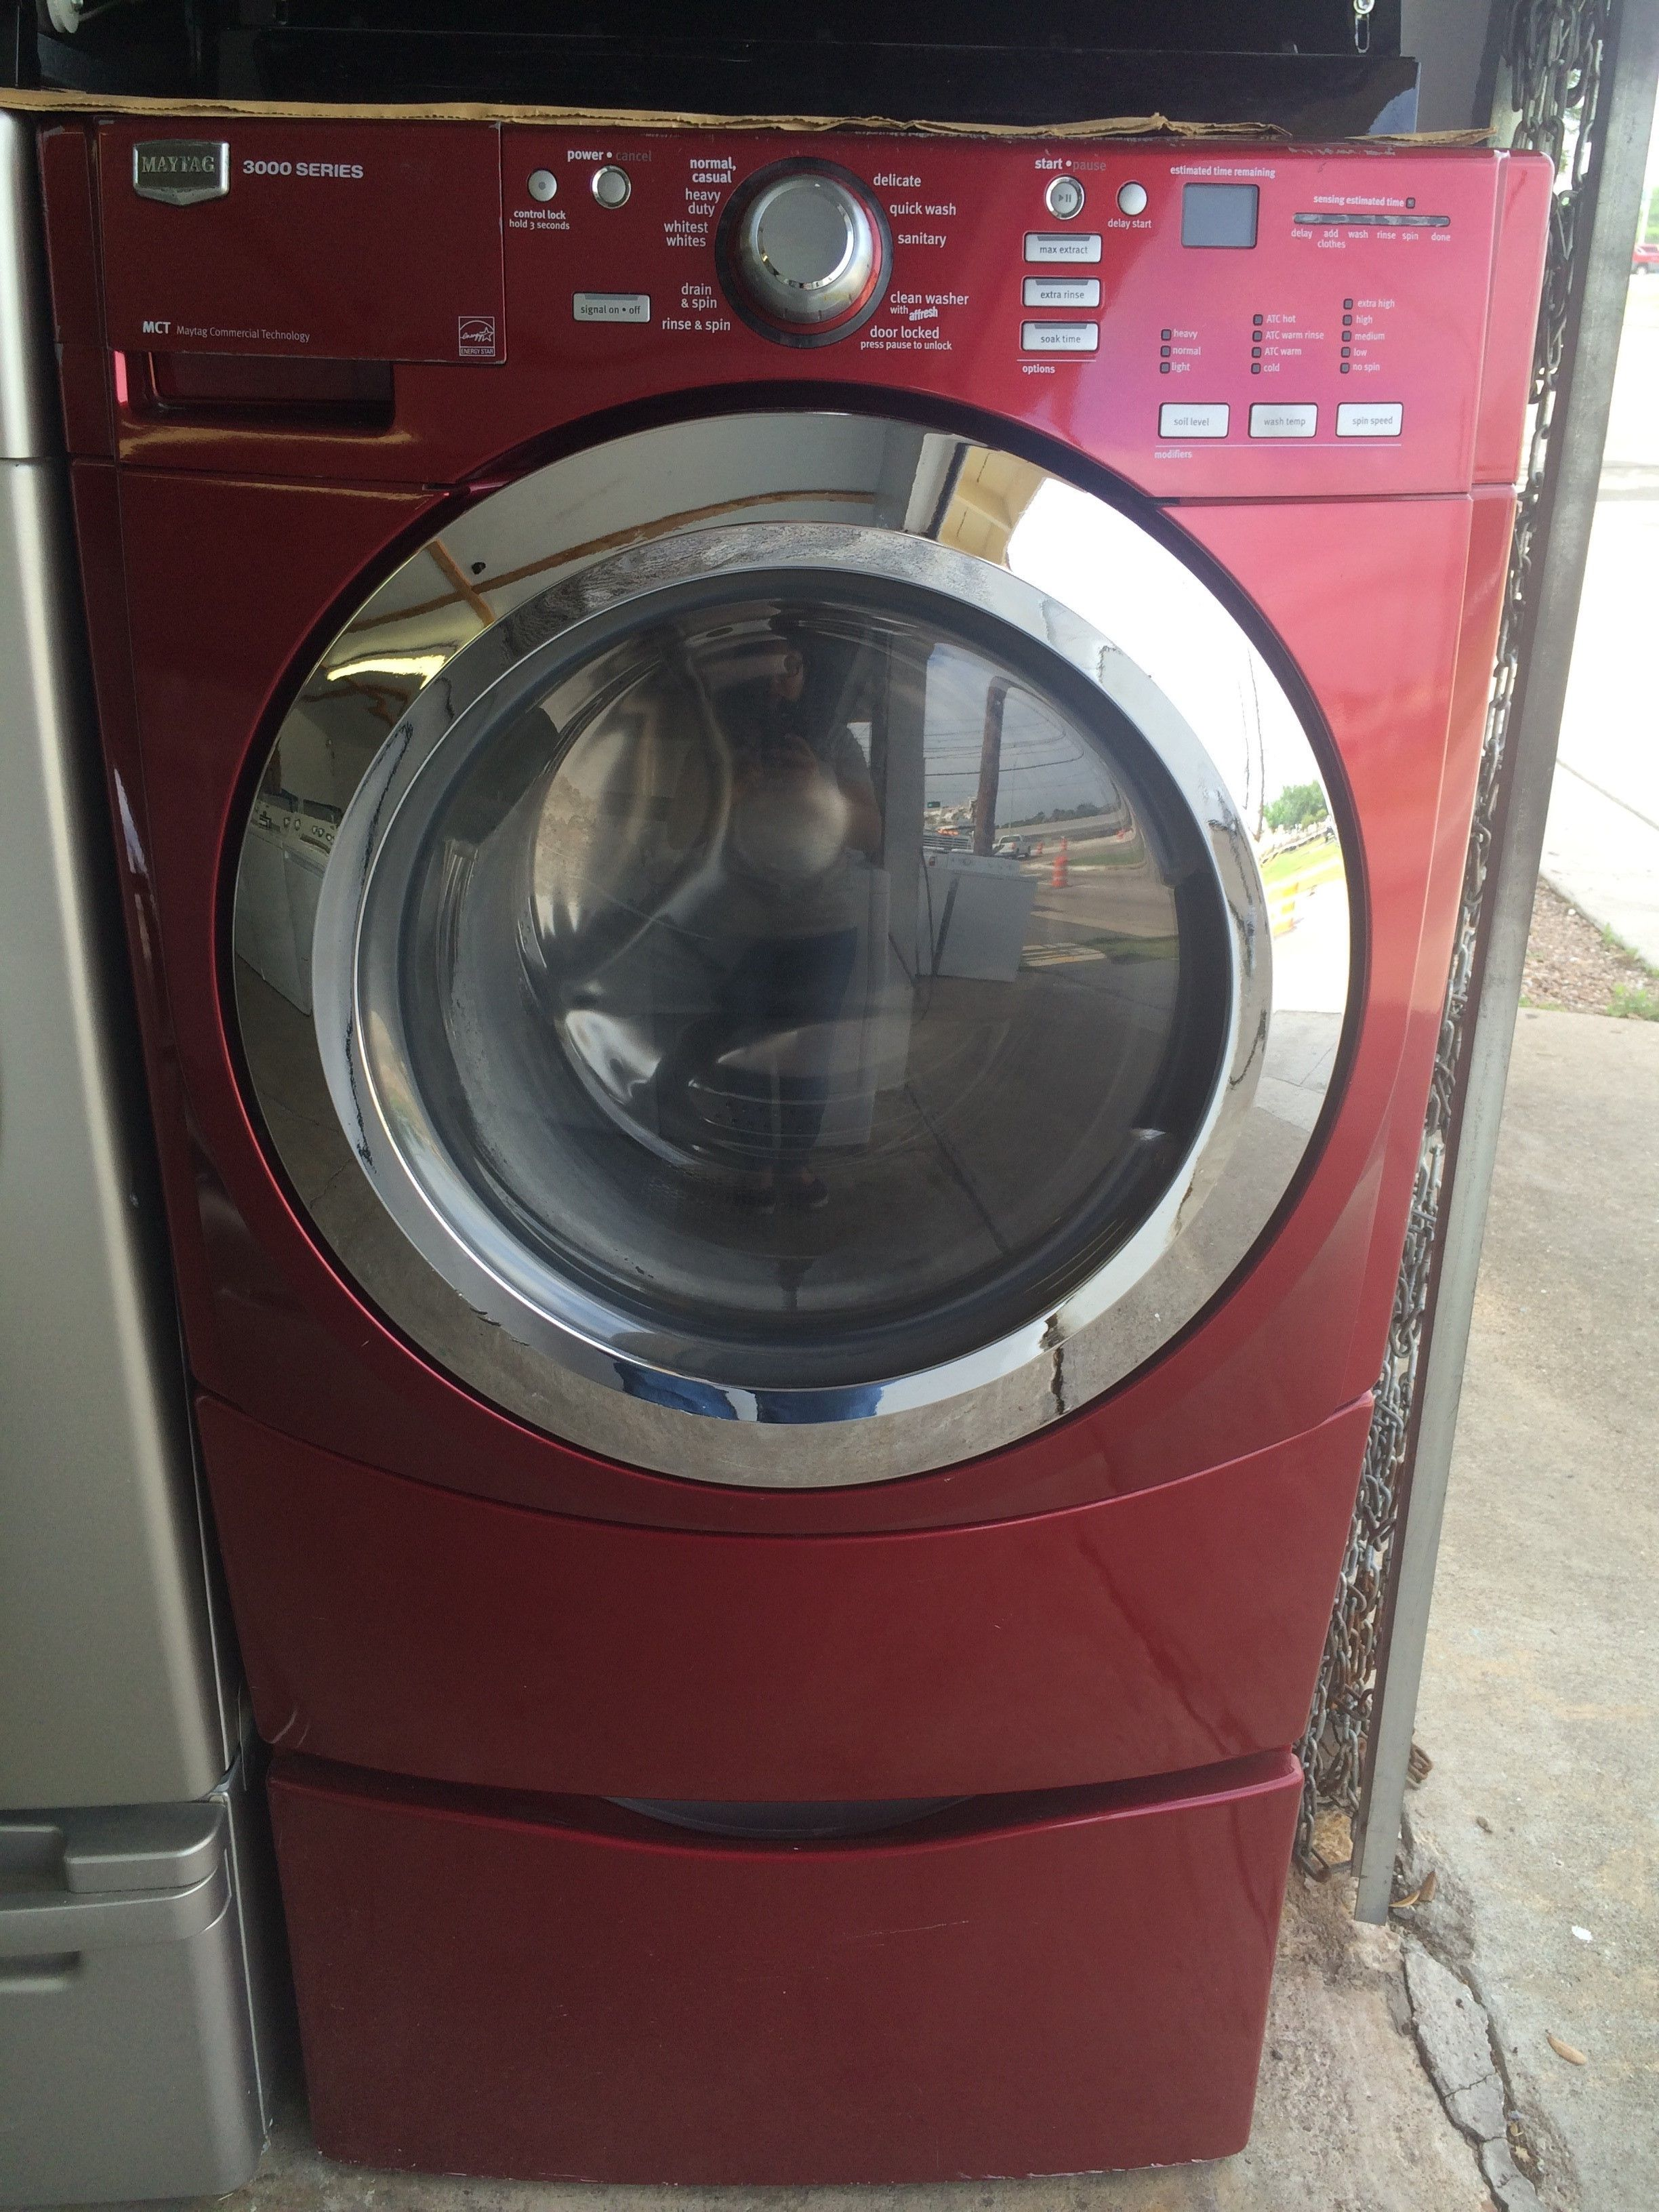 Maytag Front-Load Washer in Red Appliance Store located in Southwest Houston offering affordable prices on many household appliance brands. Located at: 4105 Cook Rd. Houston, TX 77072 281-933-9638 #houston #appliances #southwest #used #affordable #sale #texas #washers #dryers #refrigerators #icantbelieveididntfindthisanysooner #stoves #ranges